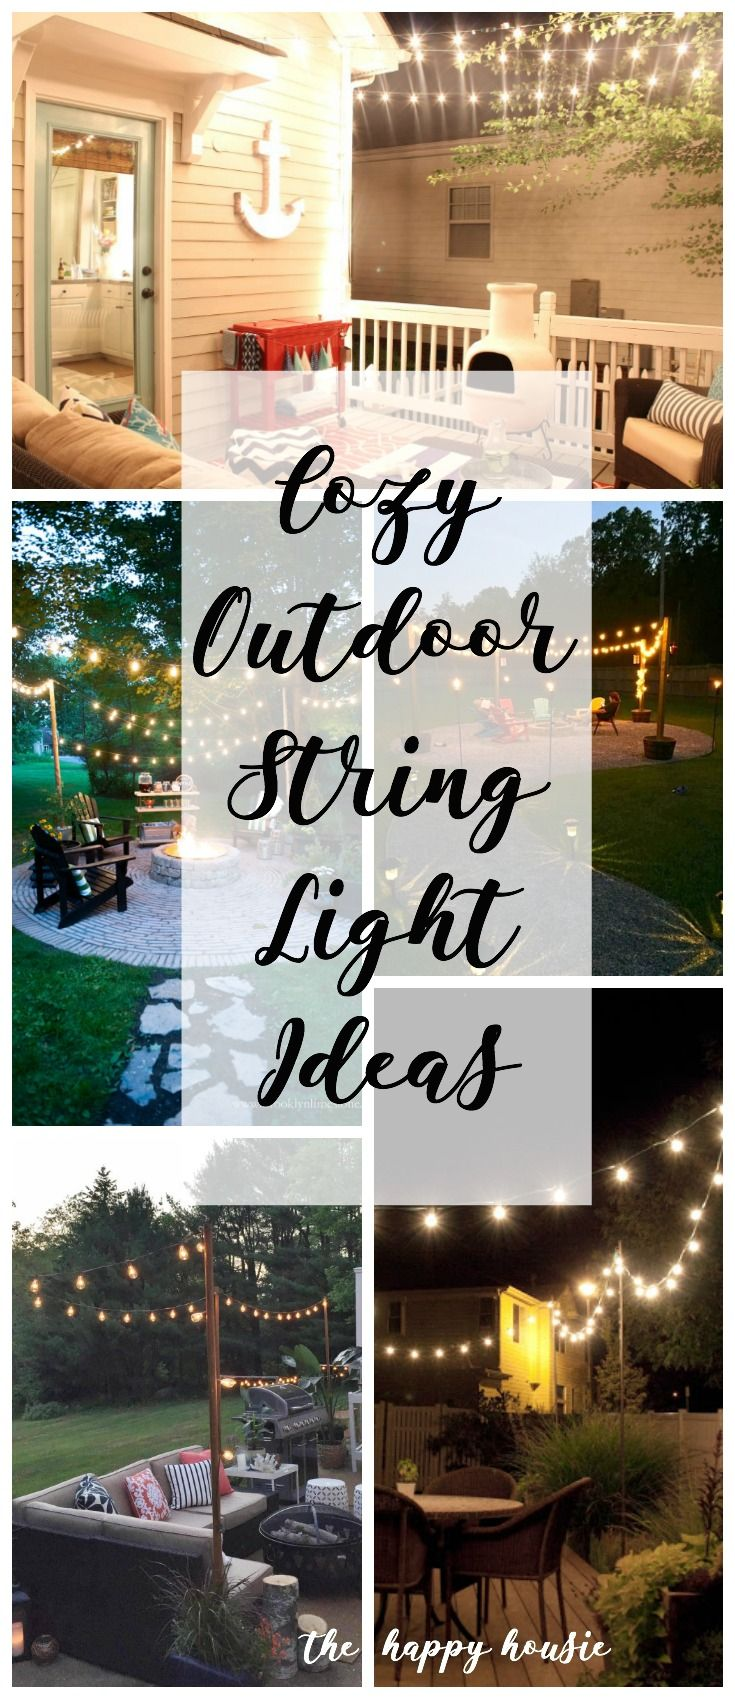 Deck Progress and Dreaming of Outdoor String Lights